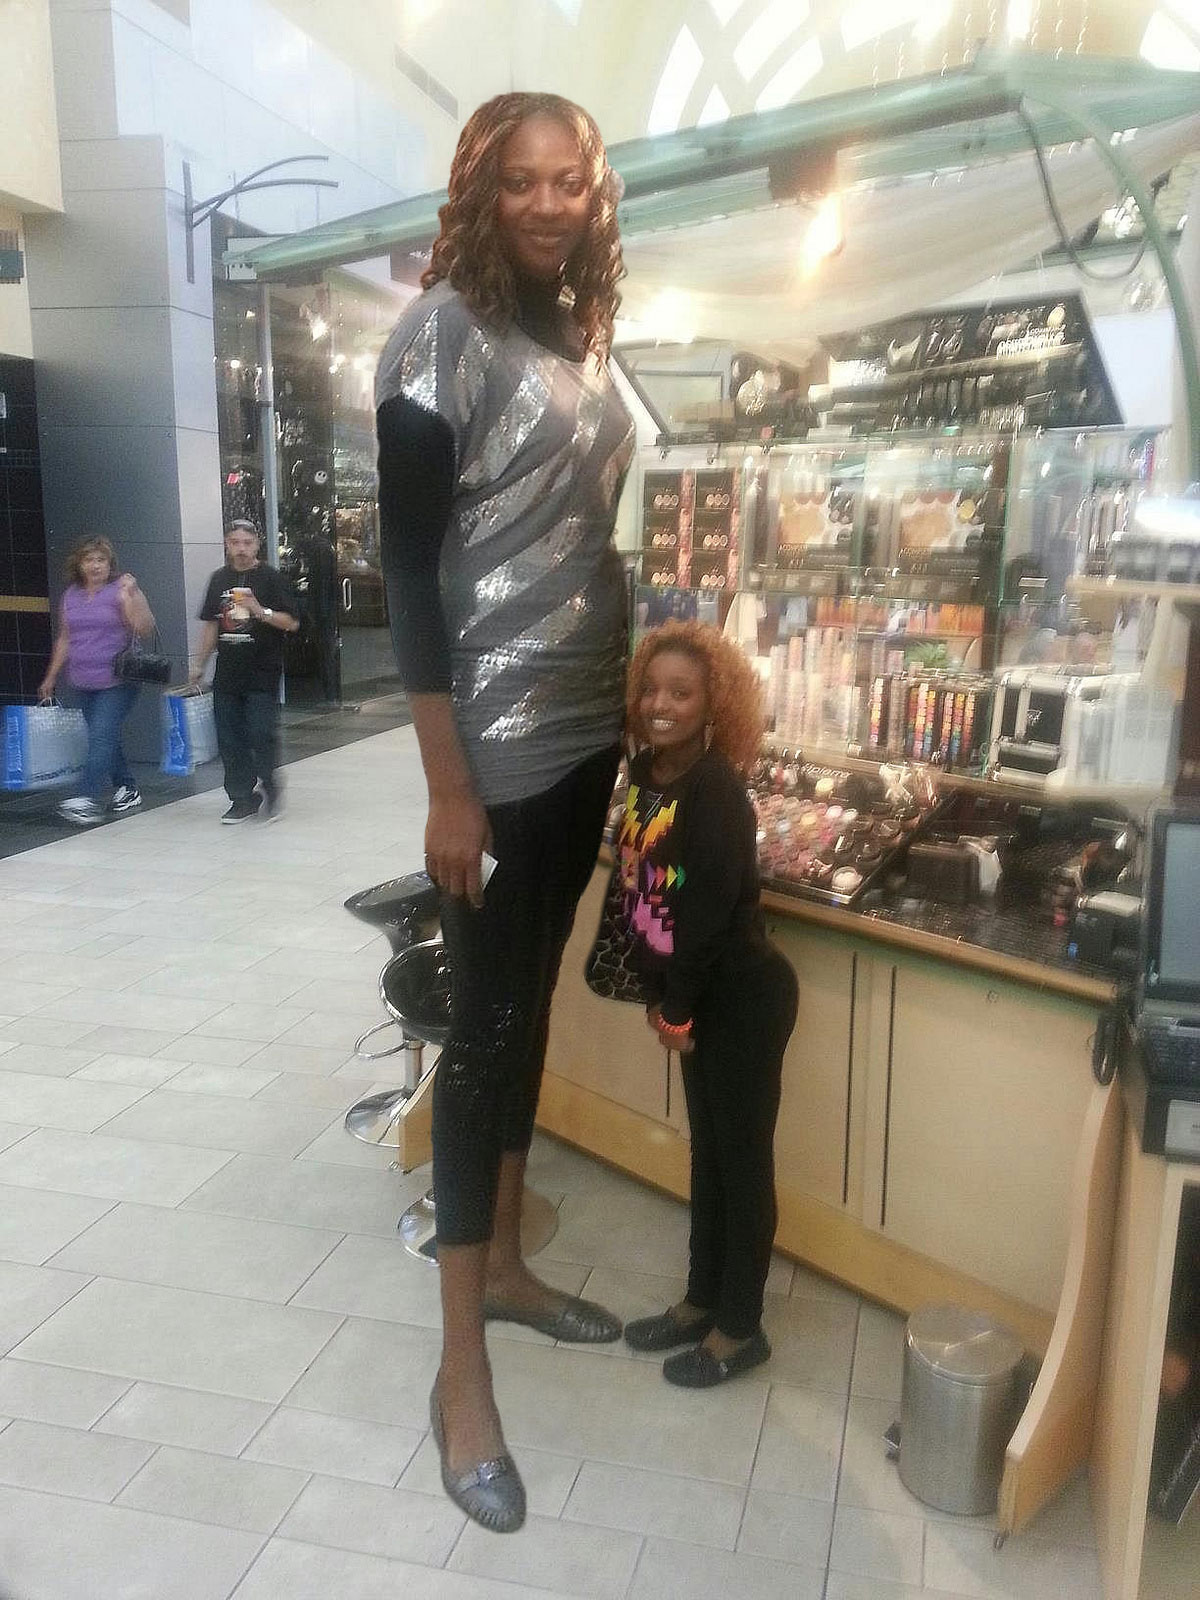 super tall woman at the mall by lowerrider on DeviantArt